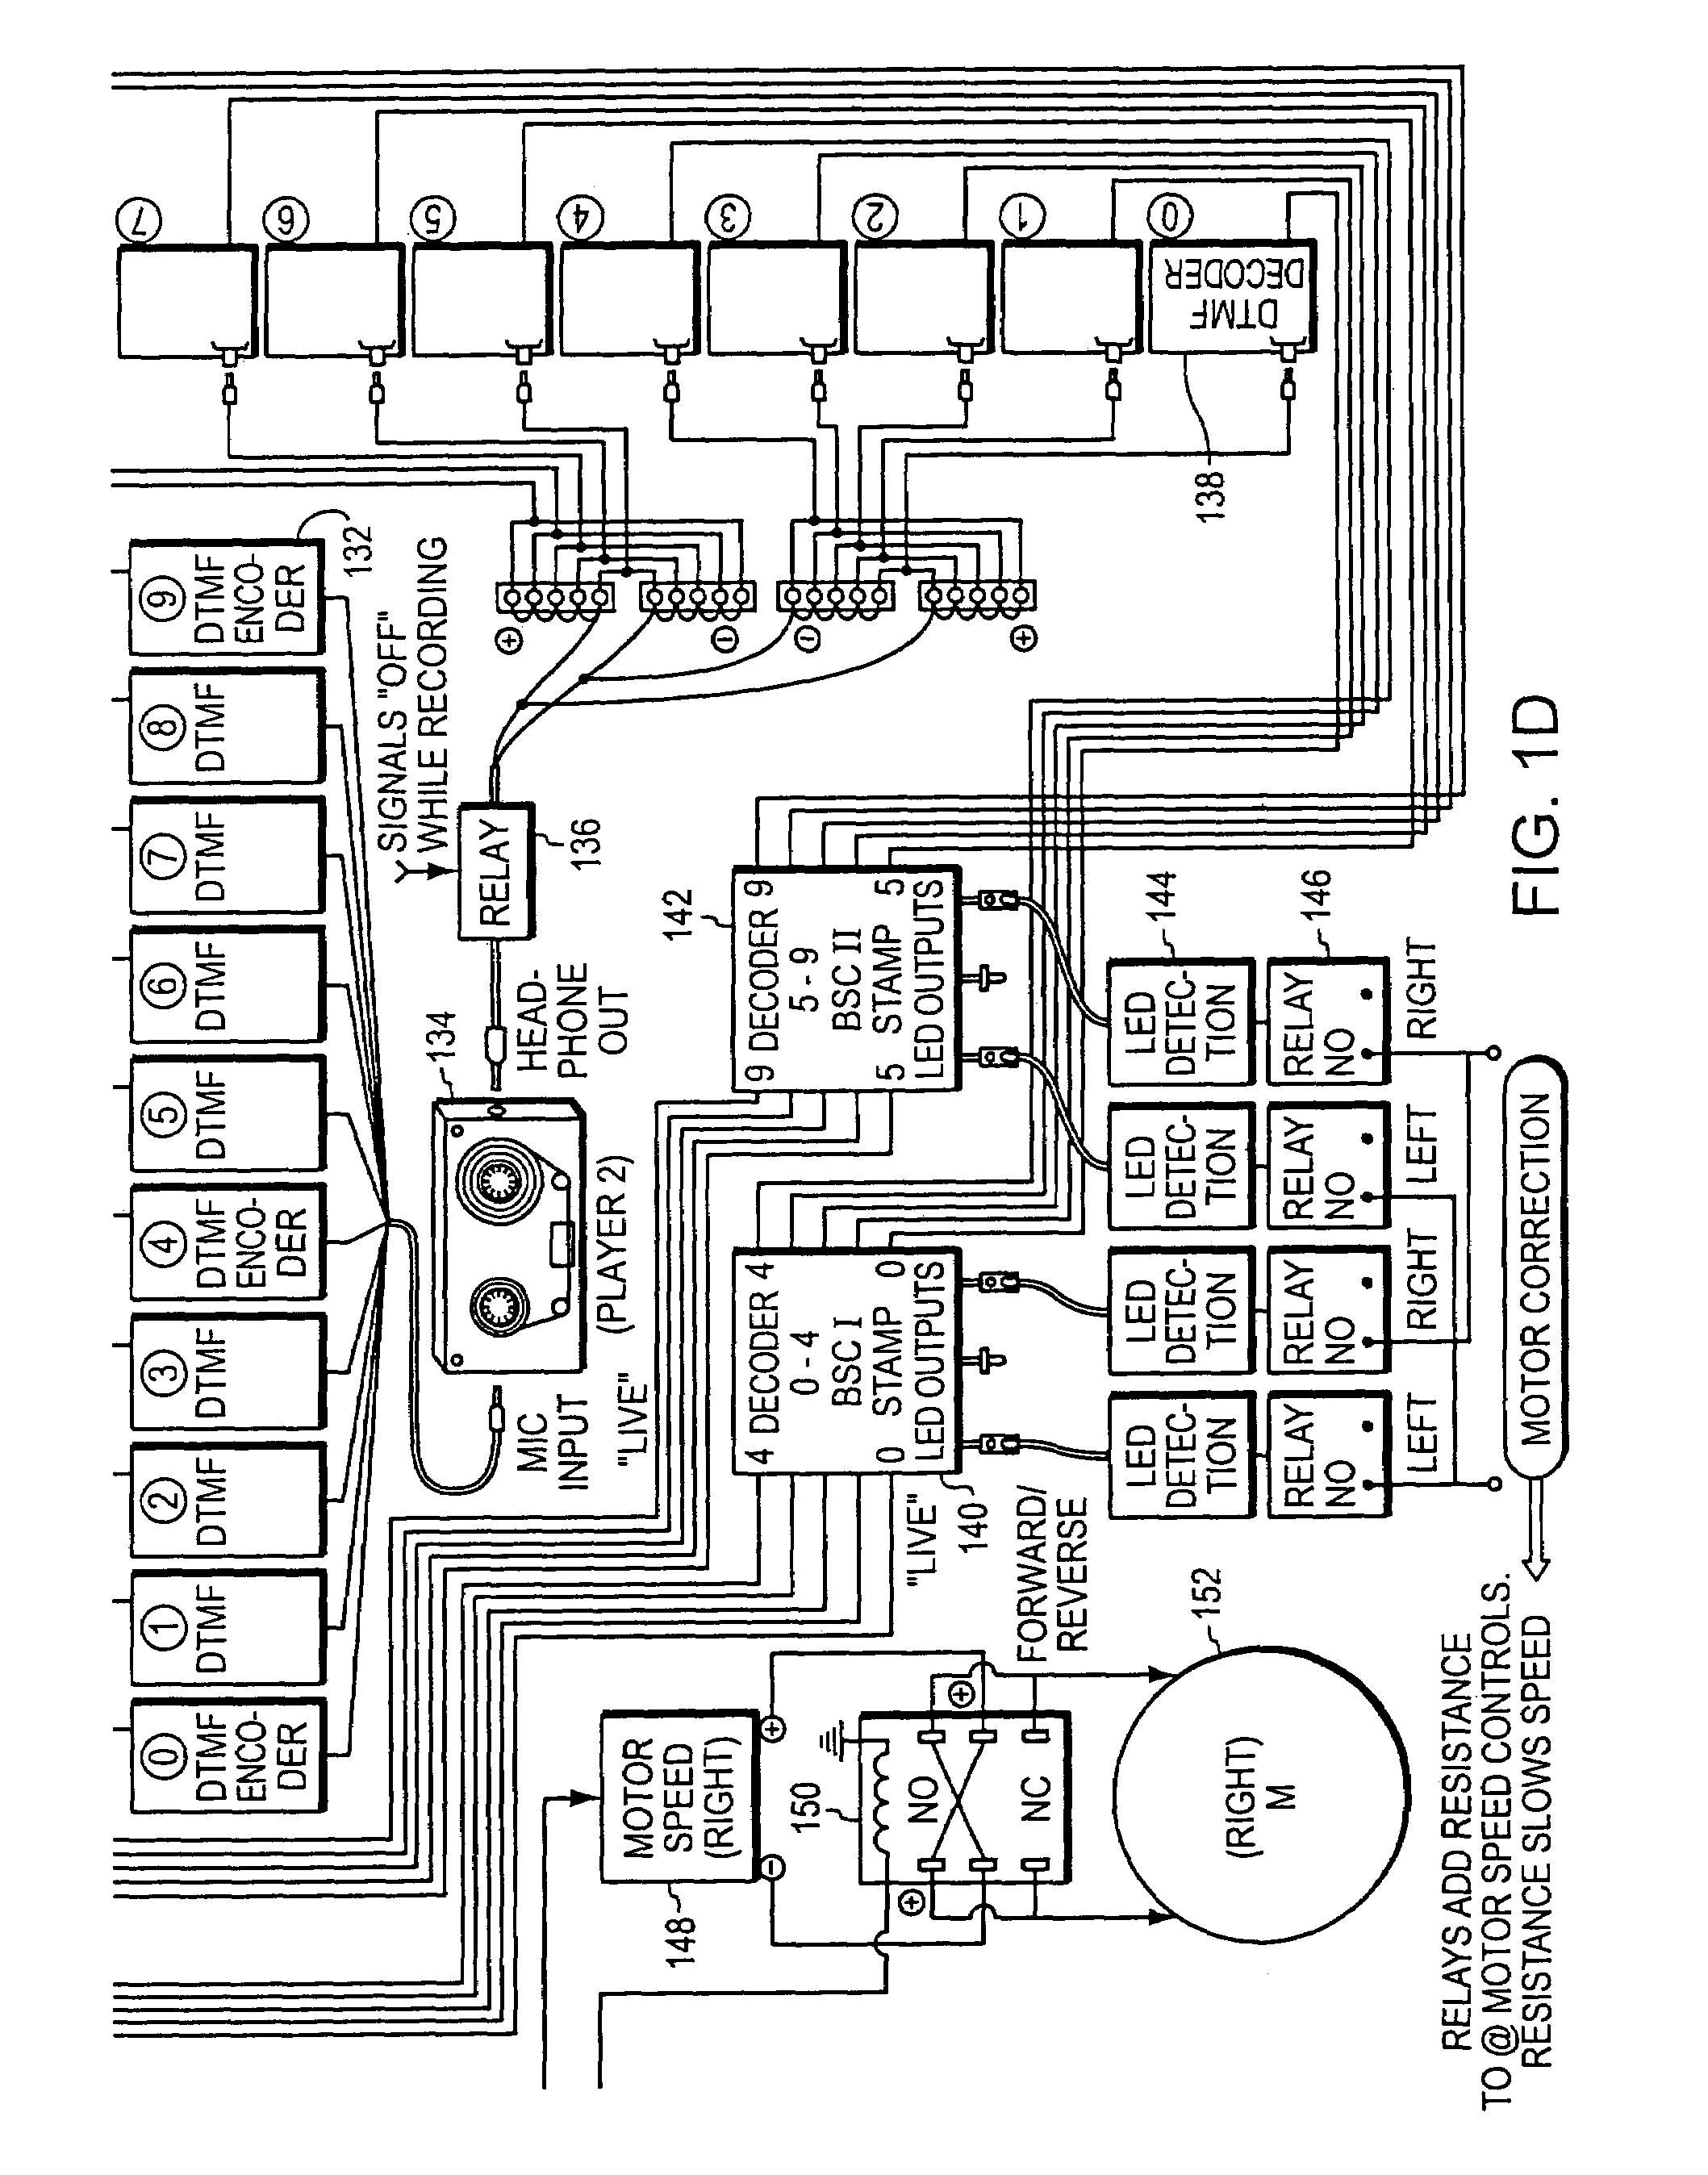 Patent Us7107132 Programmable Lawn Mower Google Patents Dtmf Decoder Ic Working Electronic Circuits Youtube Drawing